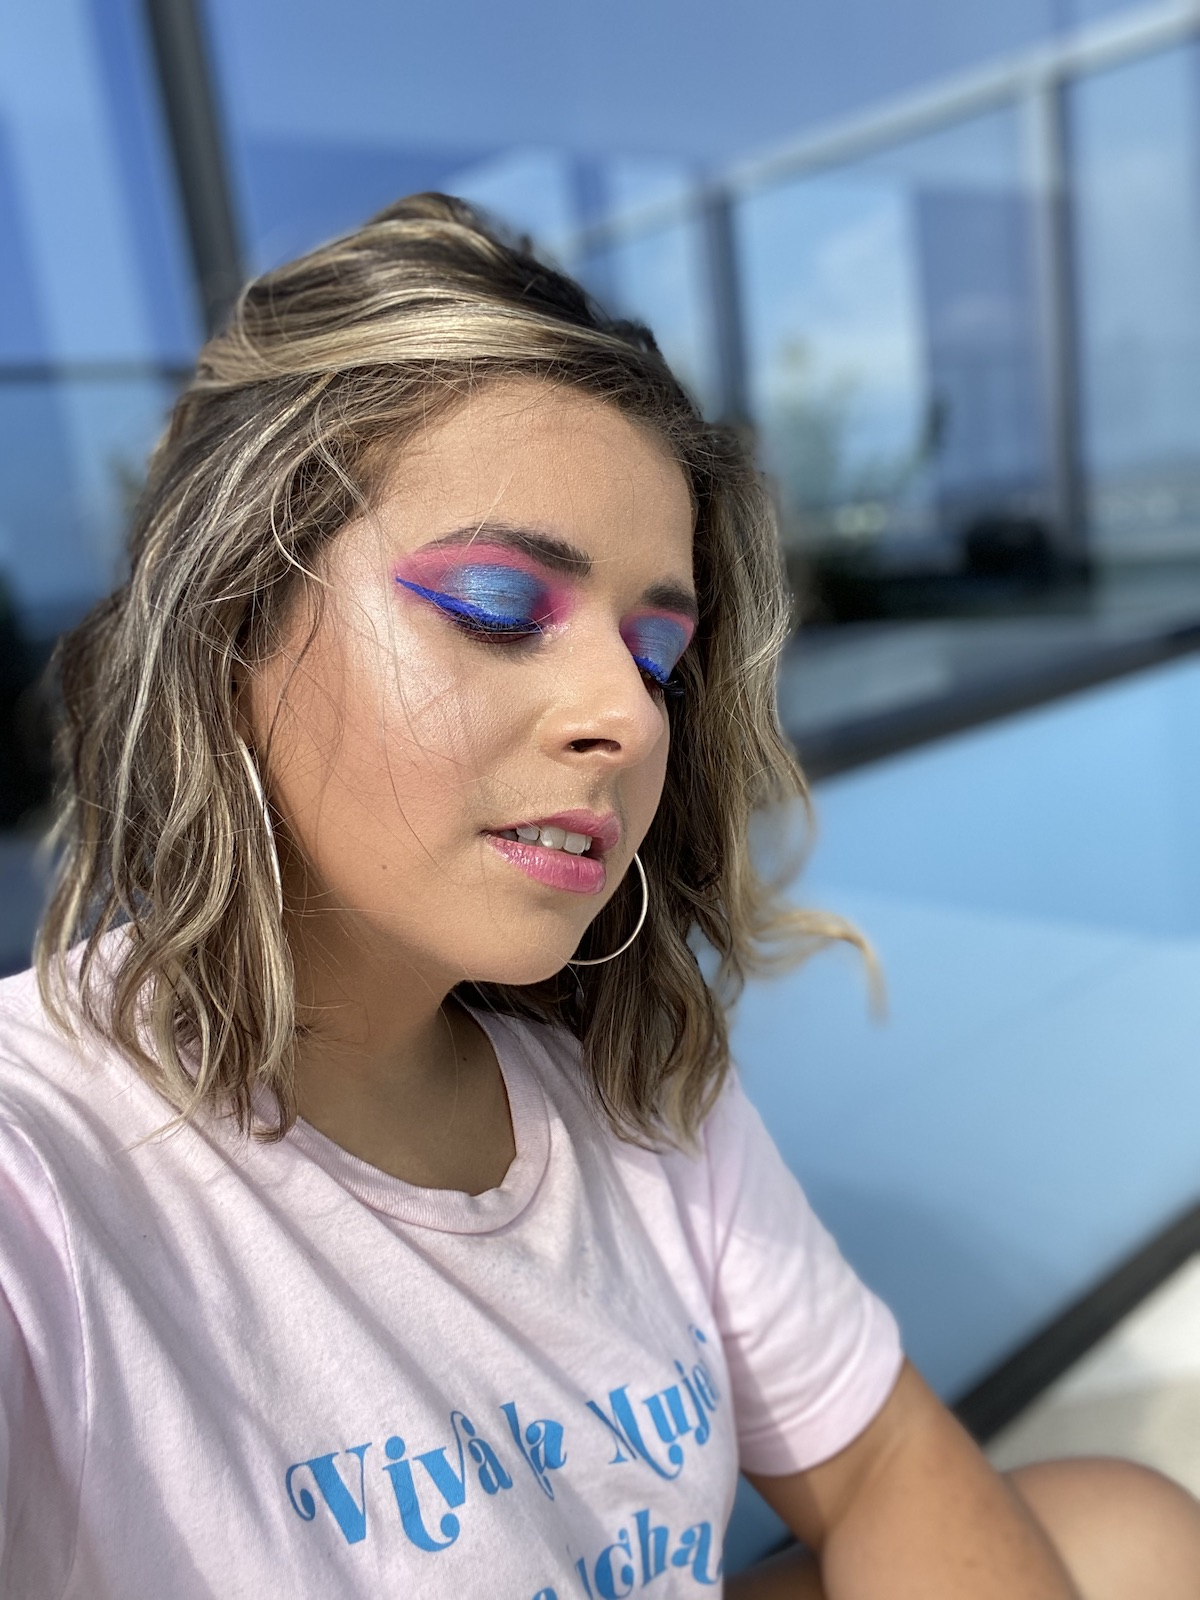 The author, Olivia Zayas Ryan, poses with a full face of makeup. Her eyes are closed and the makeup is dramatic, blue and pink. She wears large hoop earrings and looks at peace.